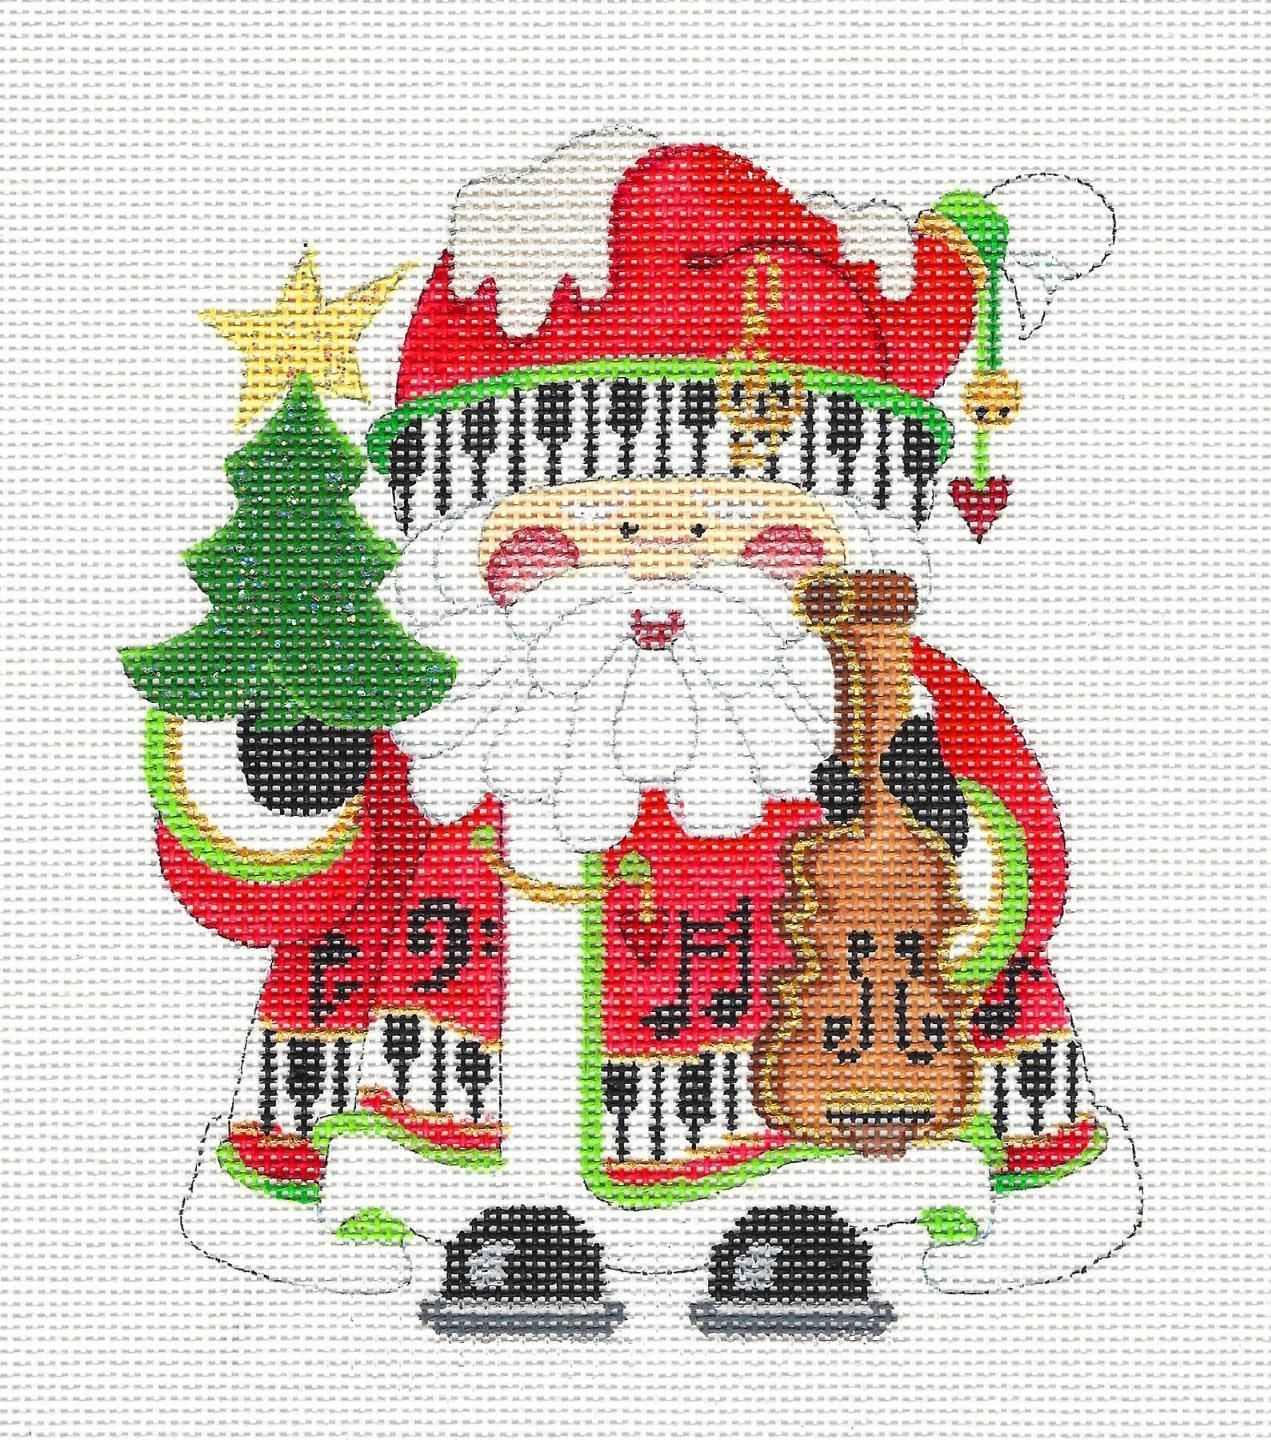 Details about *NEW* Music Santa handpainted Needlepoint Canvas ...